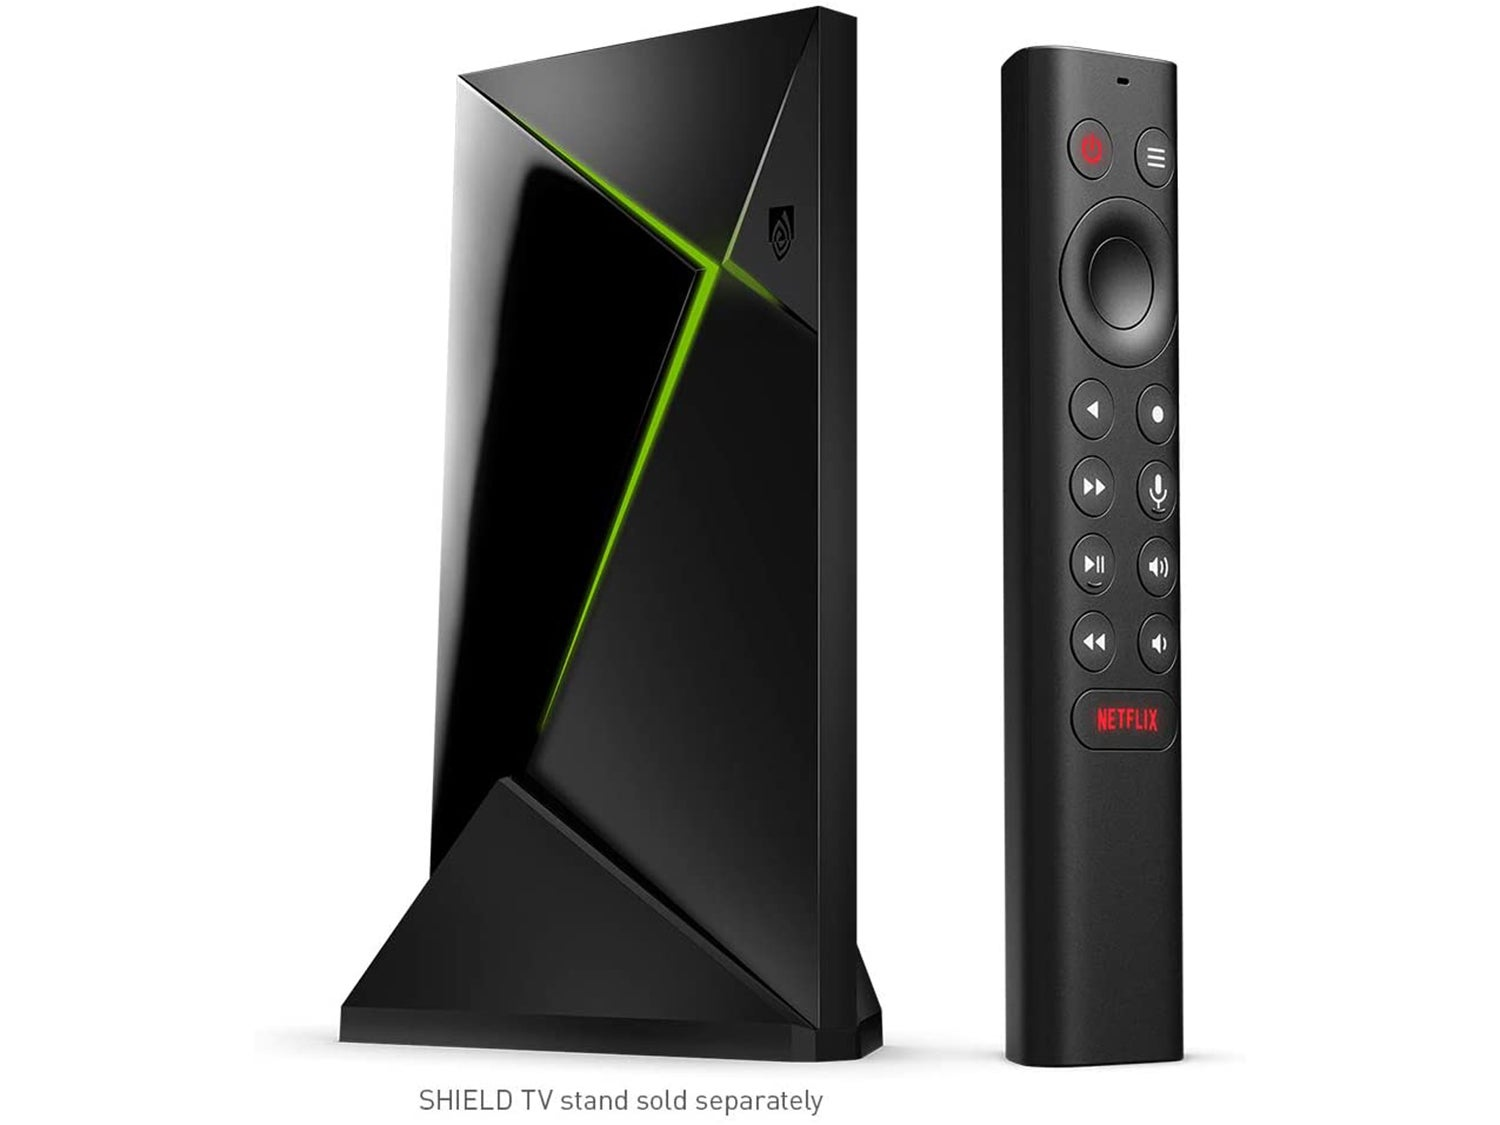 NVIDIA Shield Android TV Pro 4K HDR Streaming Media Player